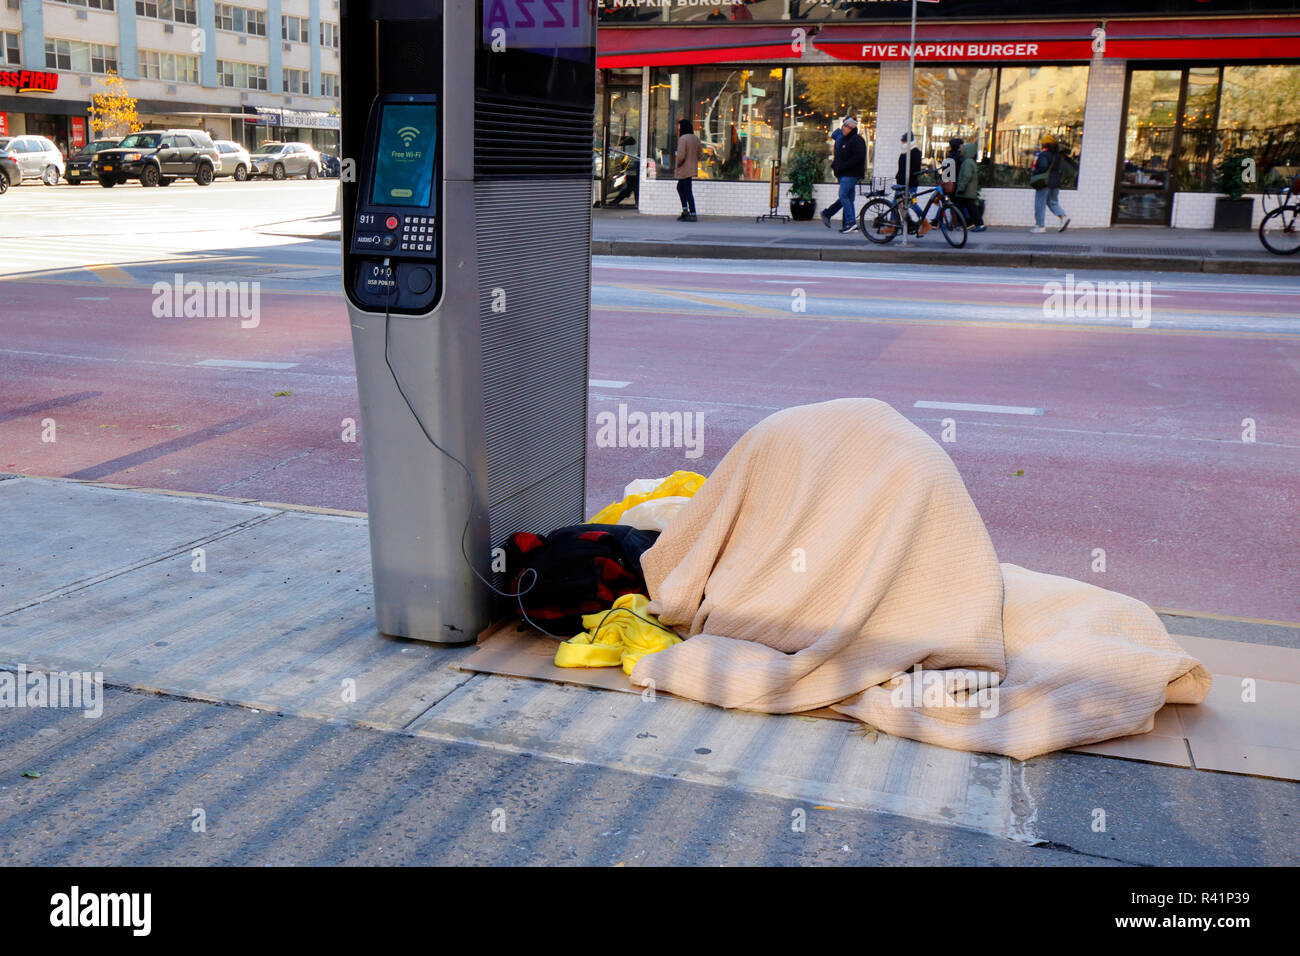 A person huddled under blankets near a free wifi and telephone kiosk in New York City - Stock Image